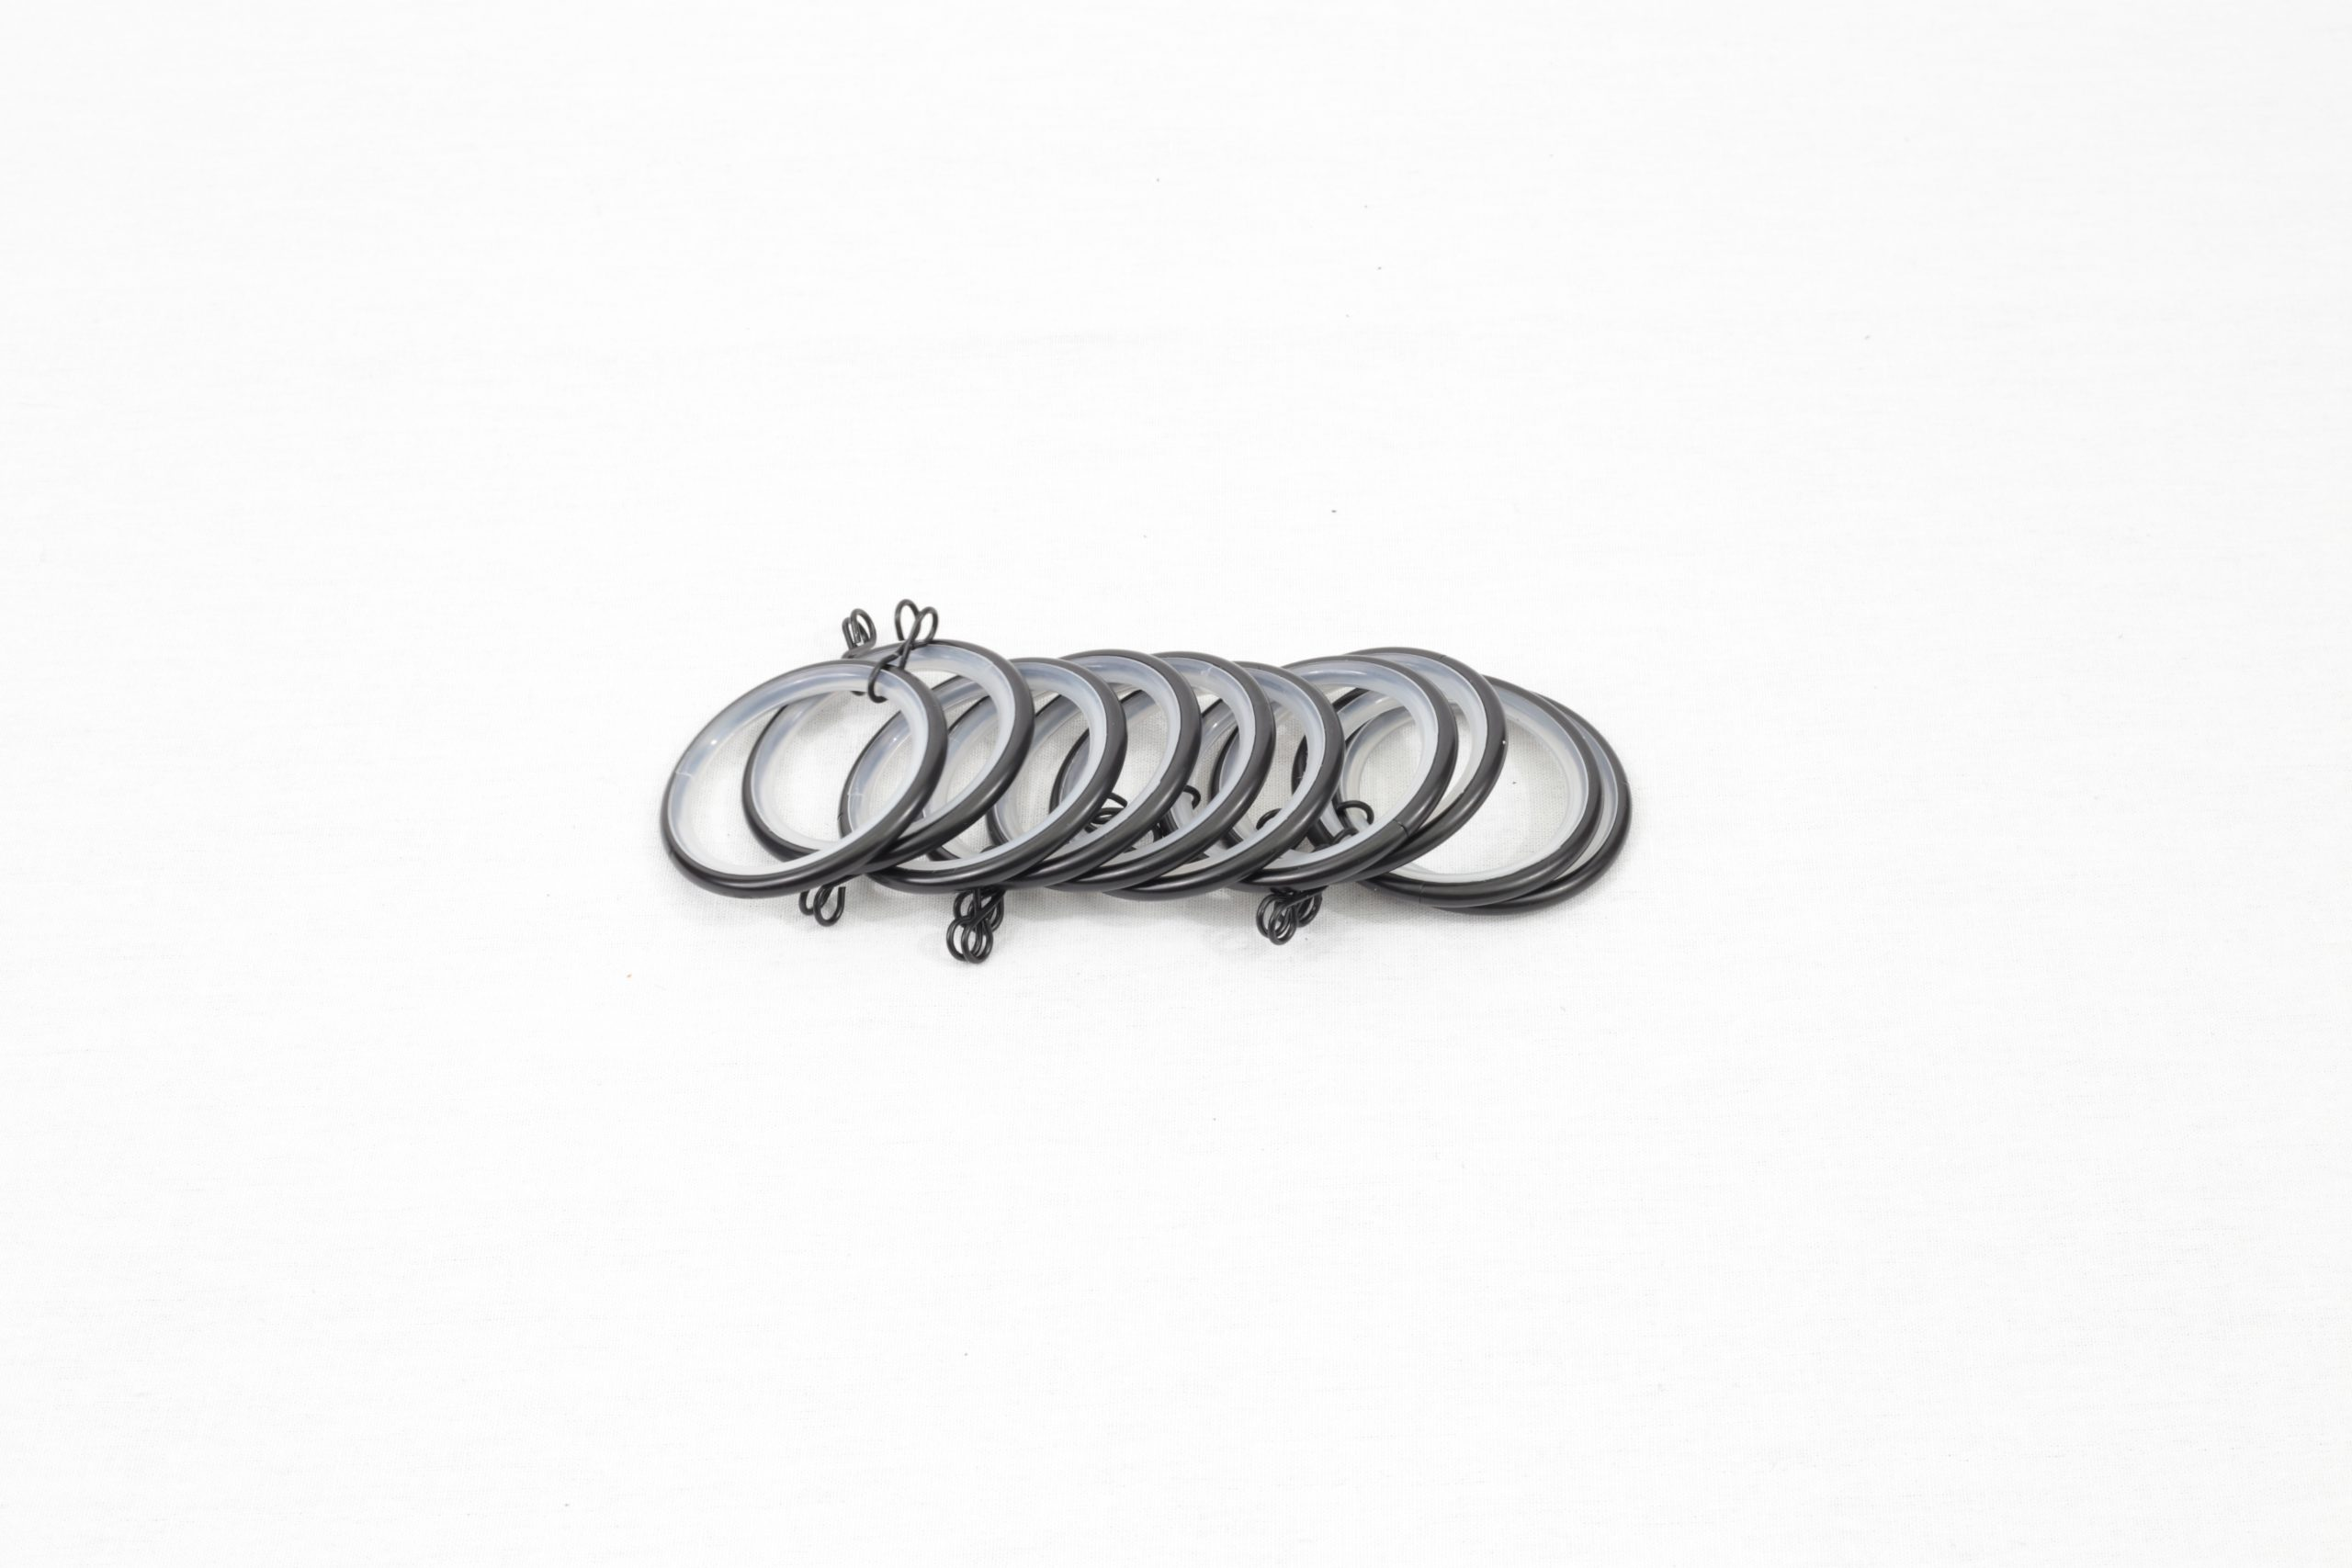 Black drapery rod rings